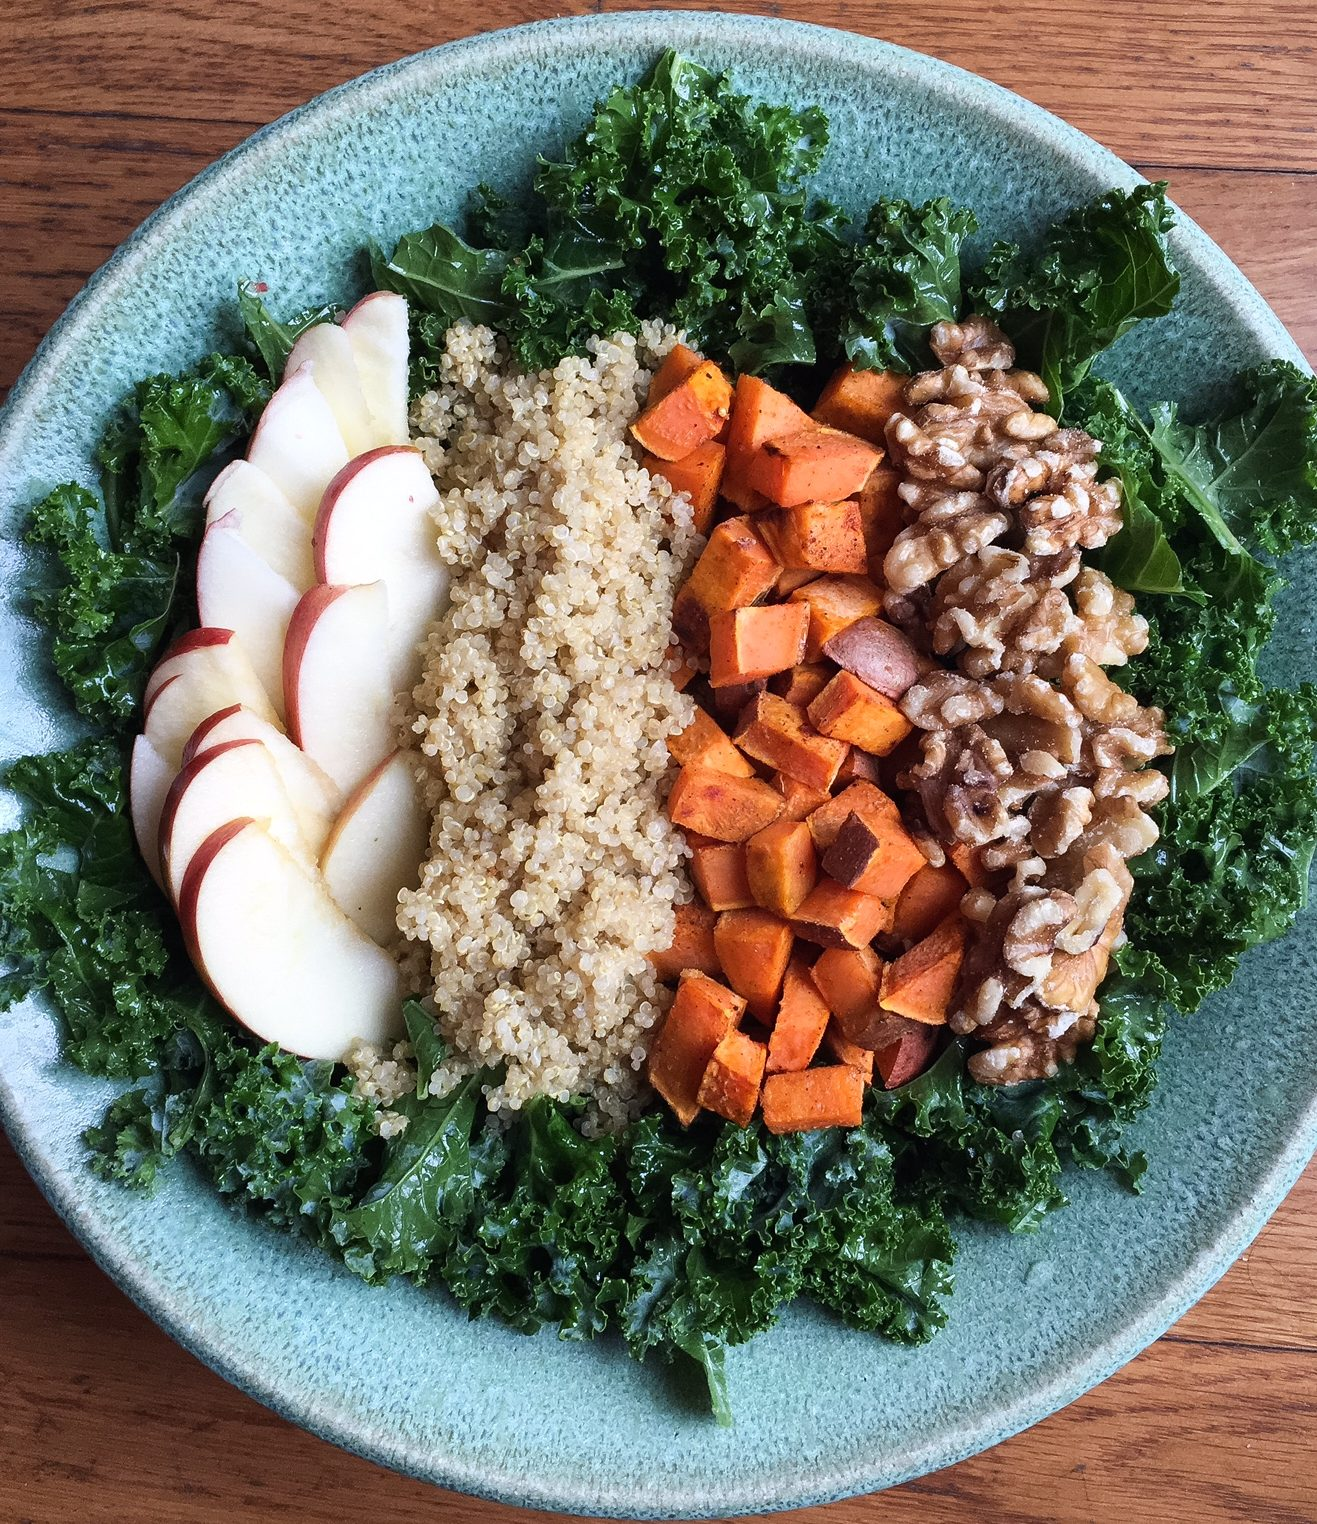 harvest kale salad, kale, kale salad, sweet potato, harvest salad, quinoa